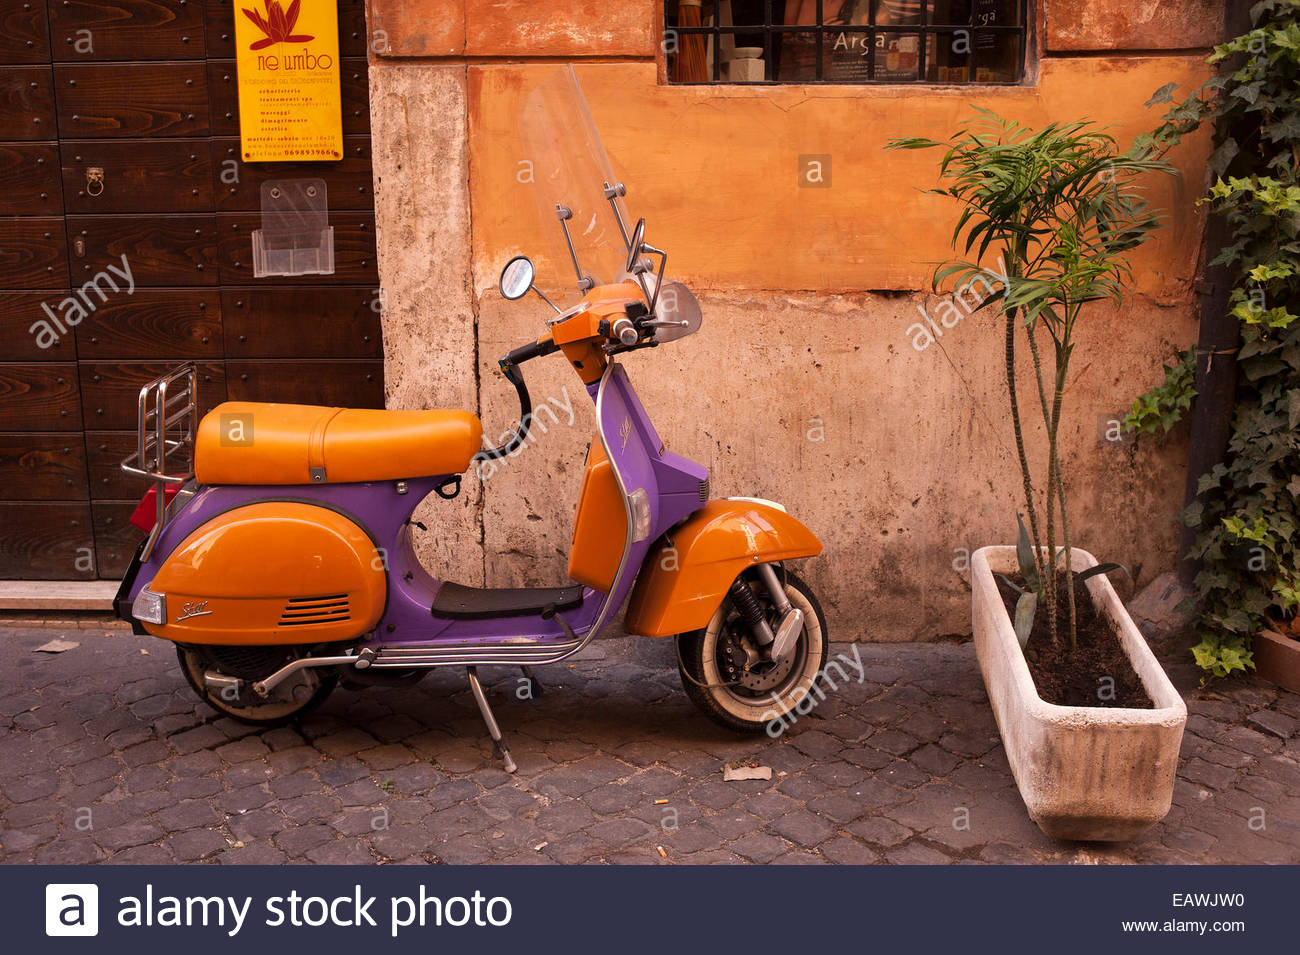 A scooter is parked on a city street in Rome. - Stock Image